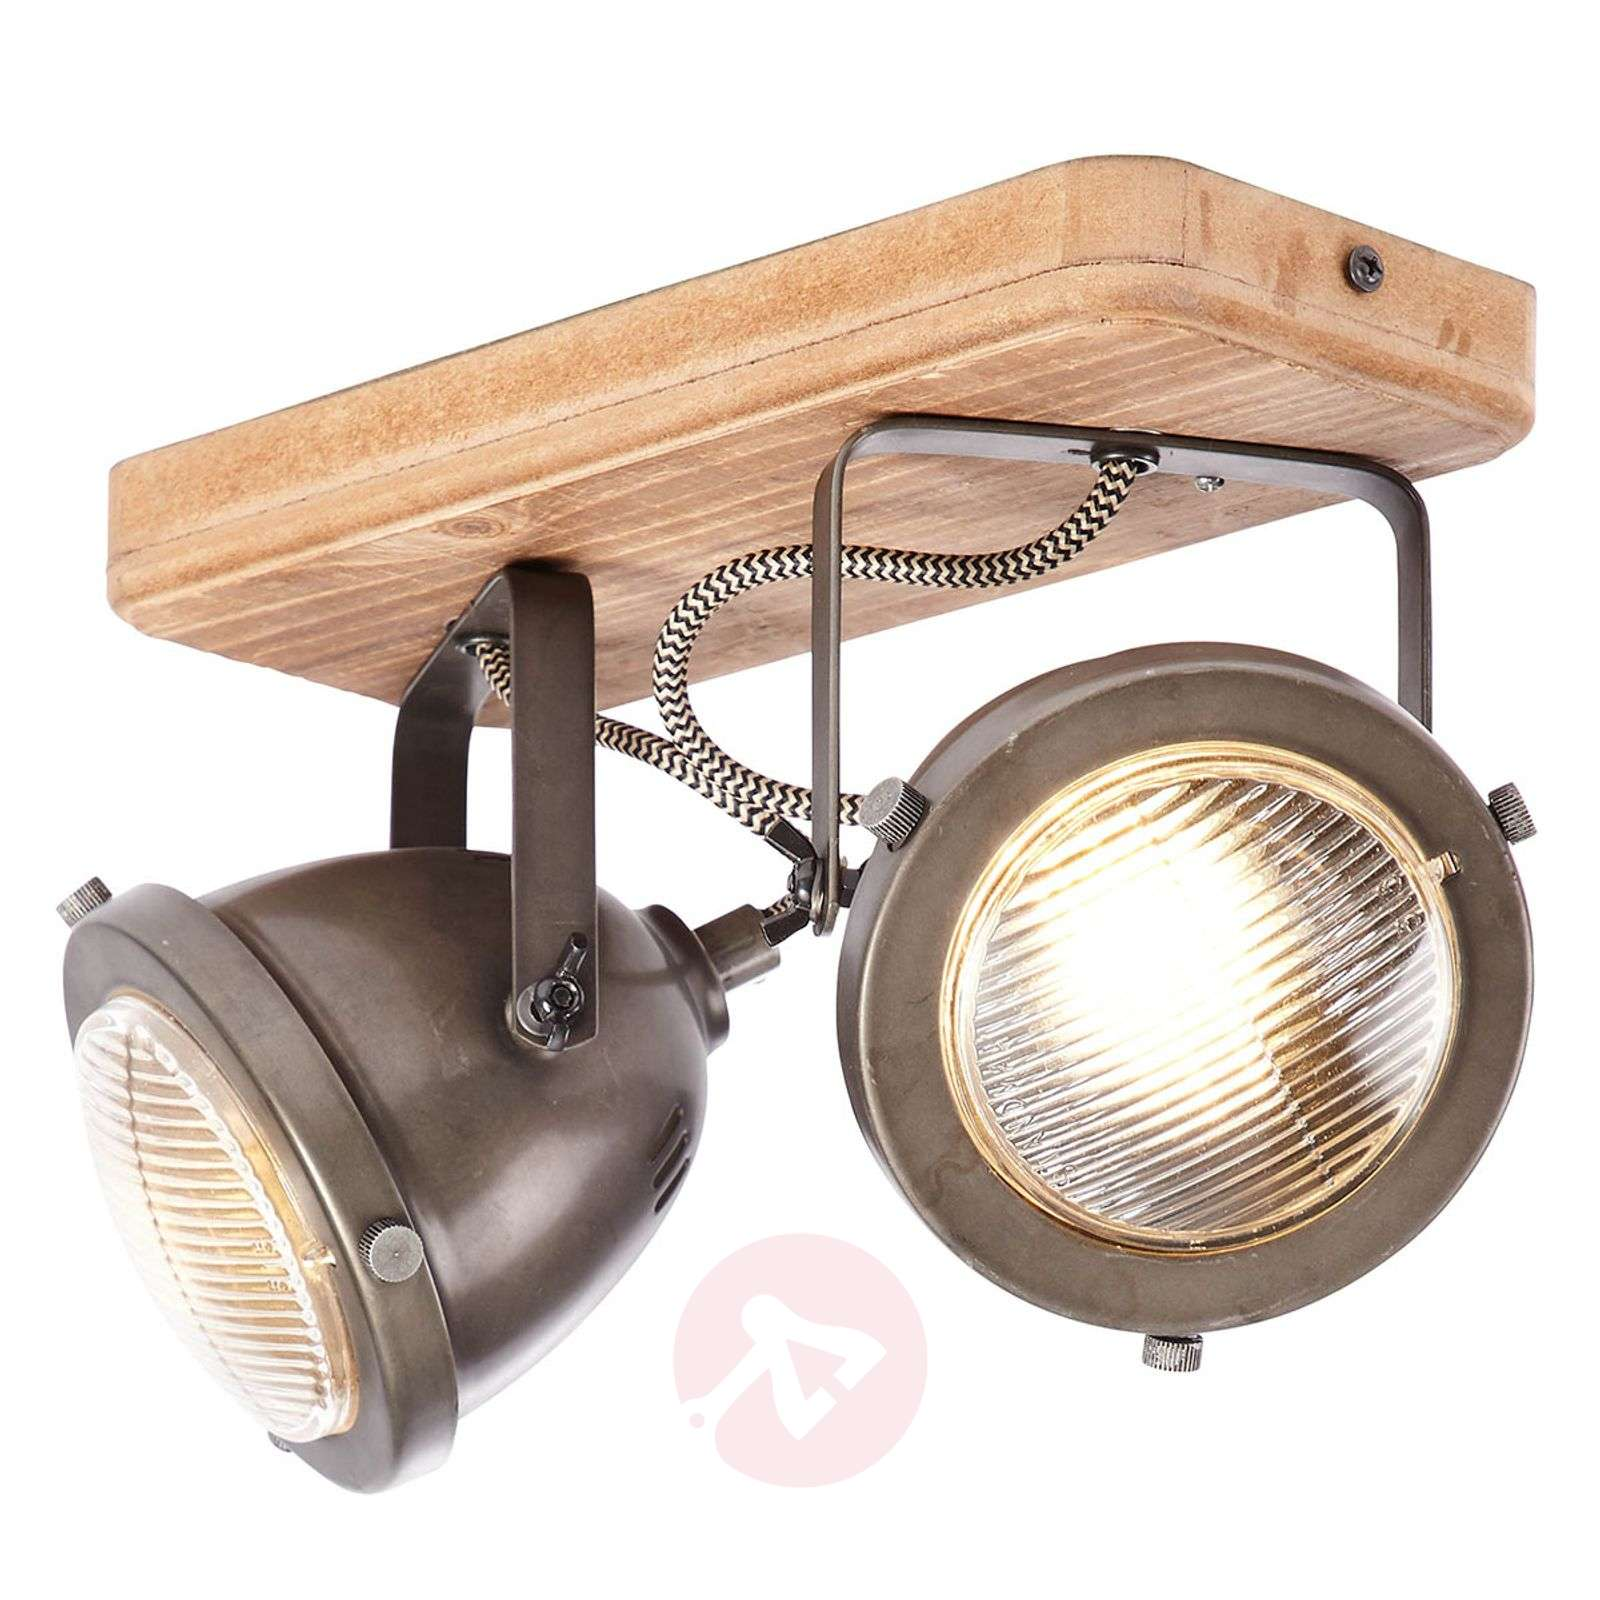 Carmen Wood plafondlamp in industriel 2 lampjes-1509429-01